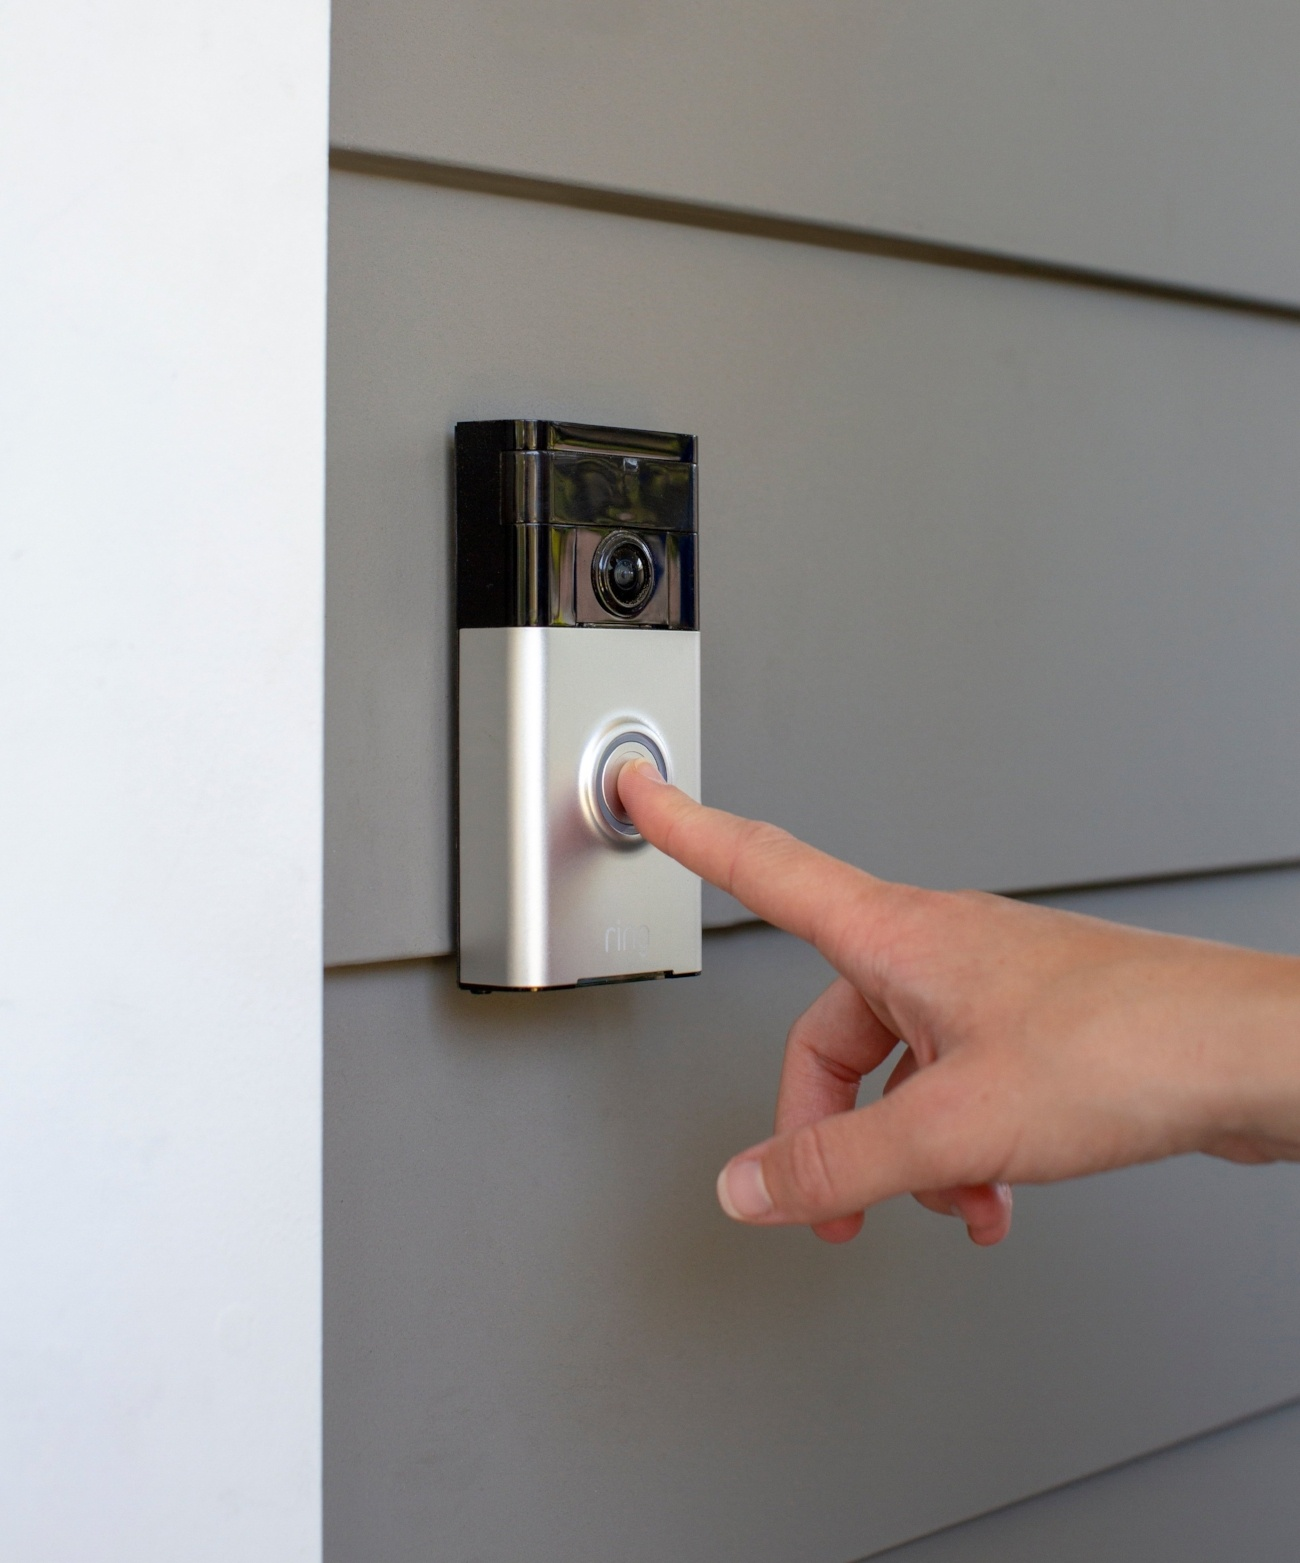 Ring Doorbell Mounting Problems: Quick Fixes to Help You